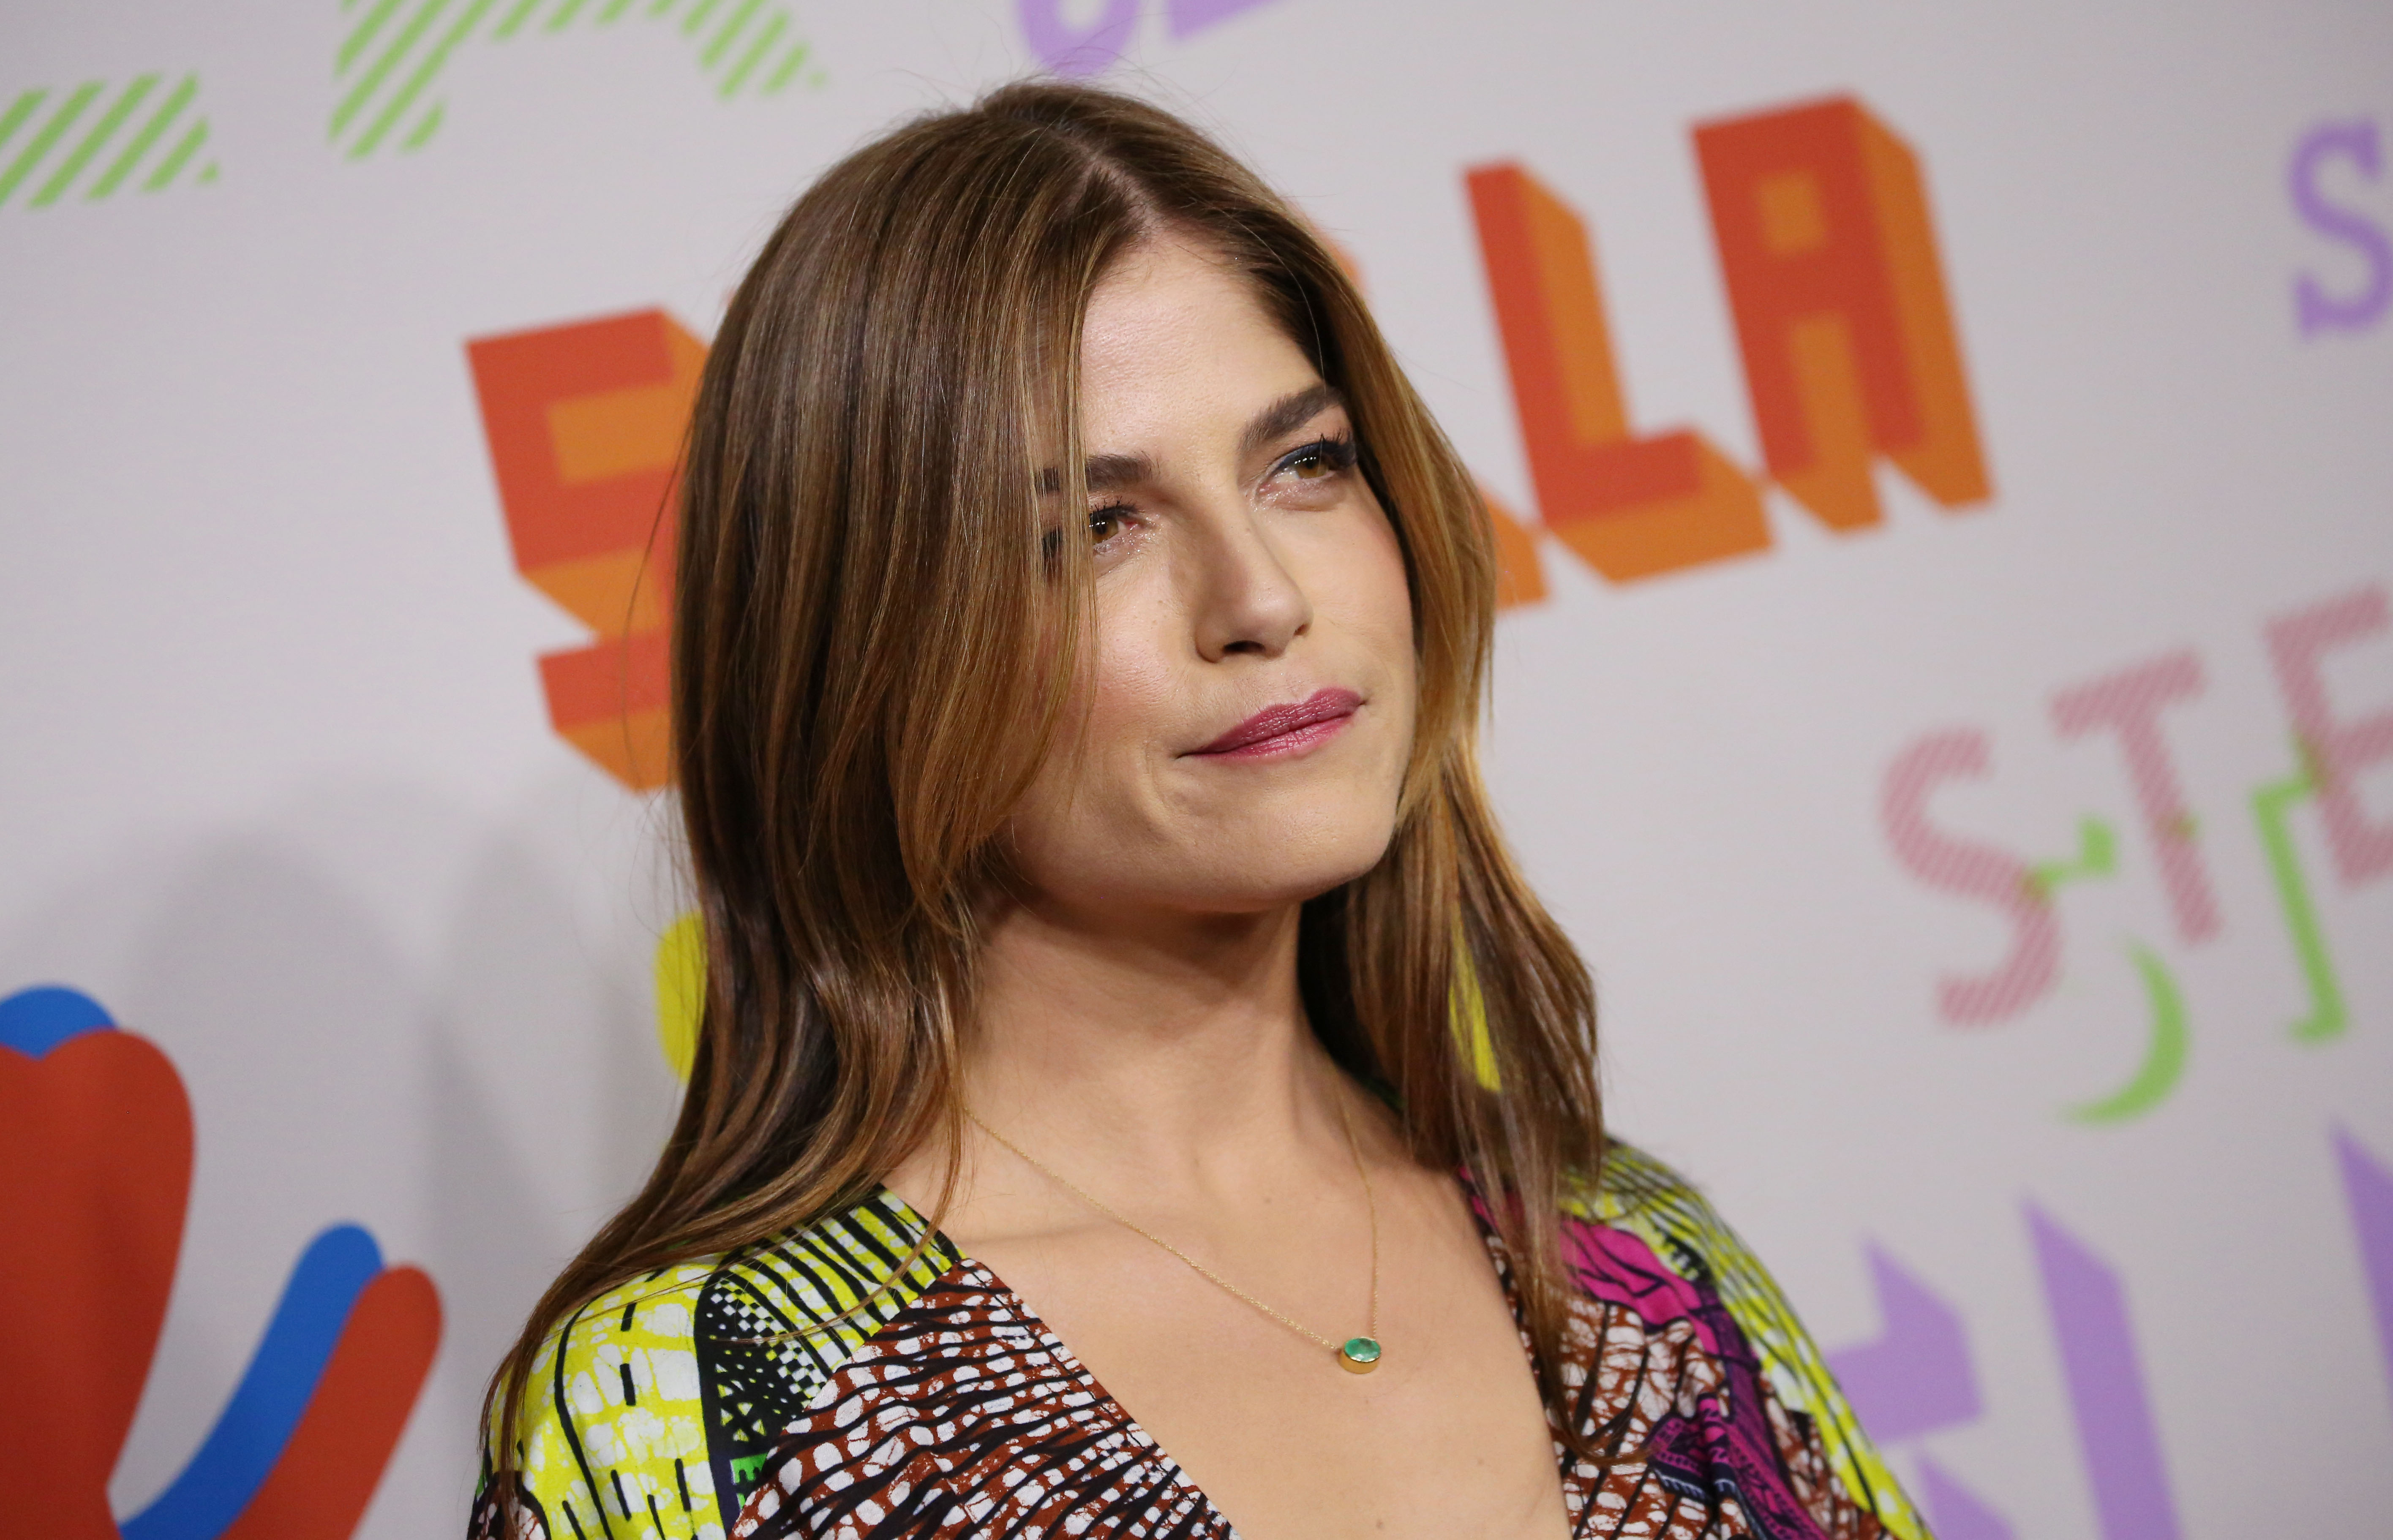 Pictures Selma Blair nudes (58 photos), Topless, Leaked, Selfie, swimsuit 2019